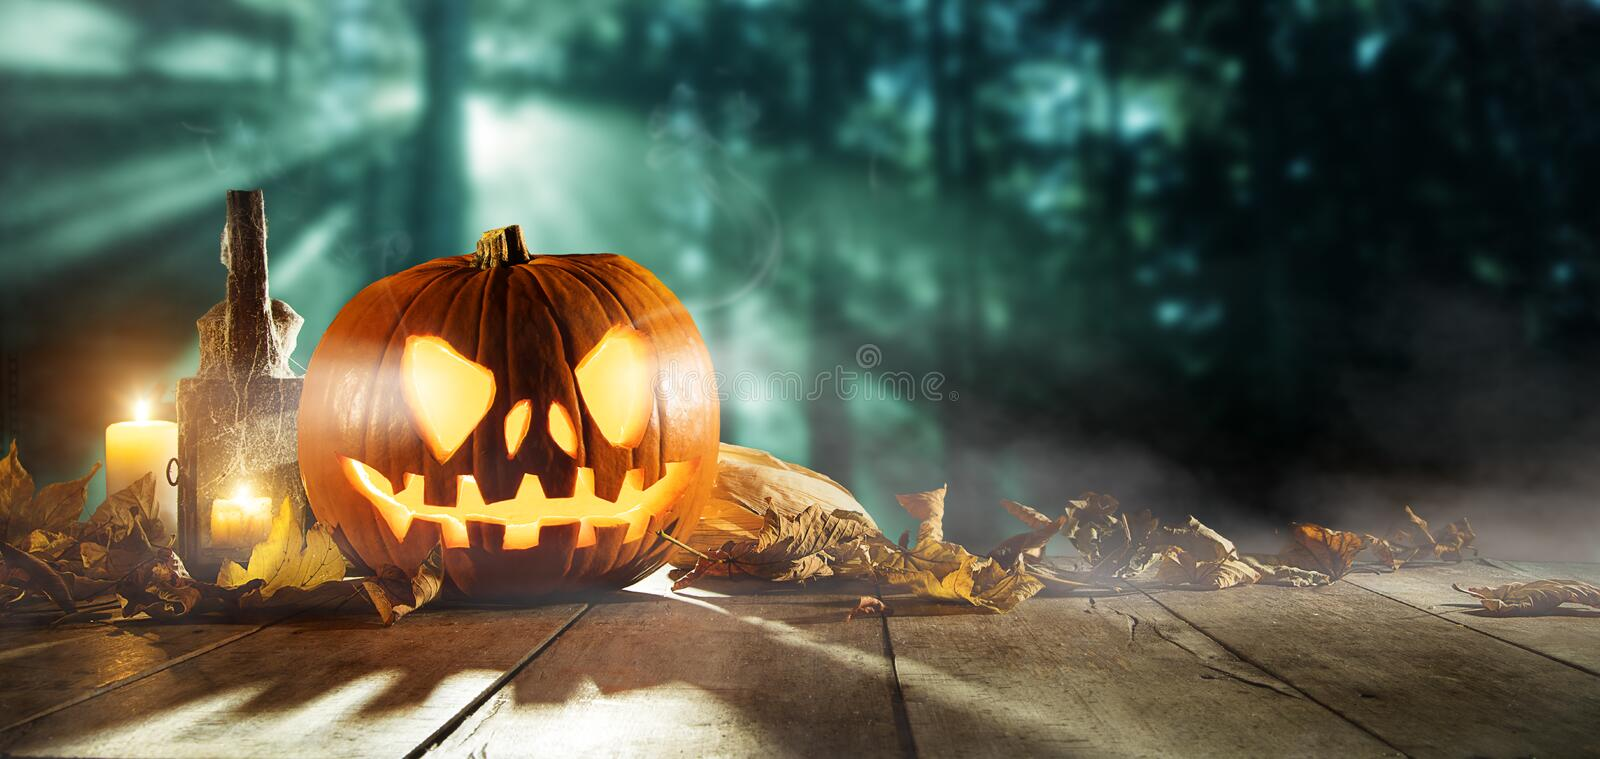 Spooky halloween pumpkins on wooden planks. With dark horror background. Celebration theme, copyspace for text royalty free stock photo